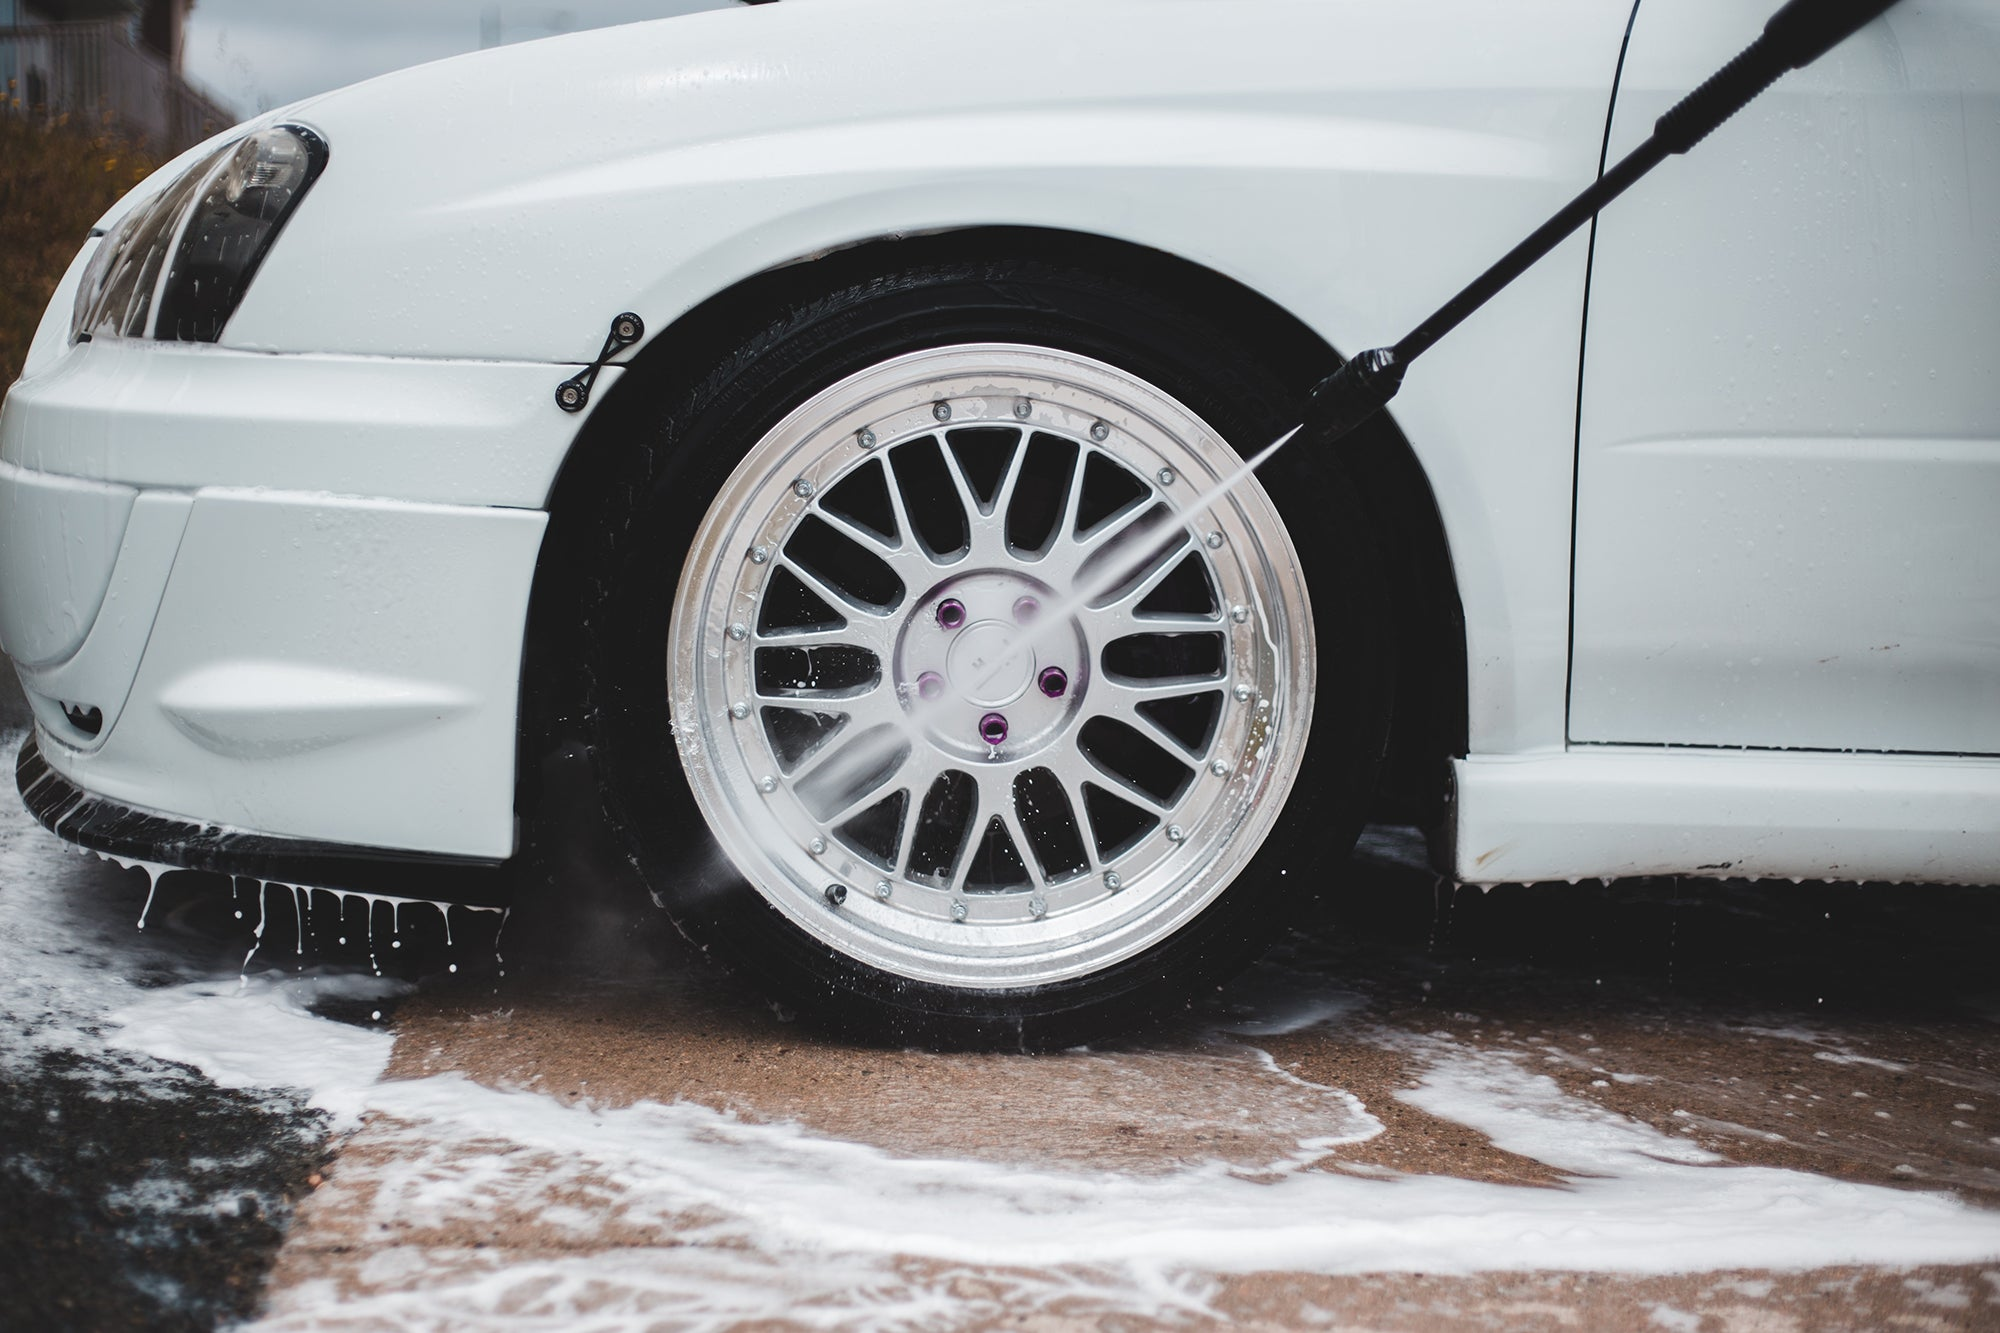 washing a white car wheel with the best pressure washer